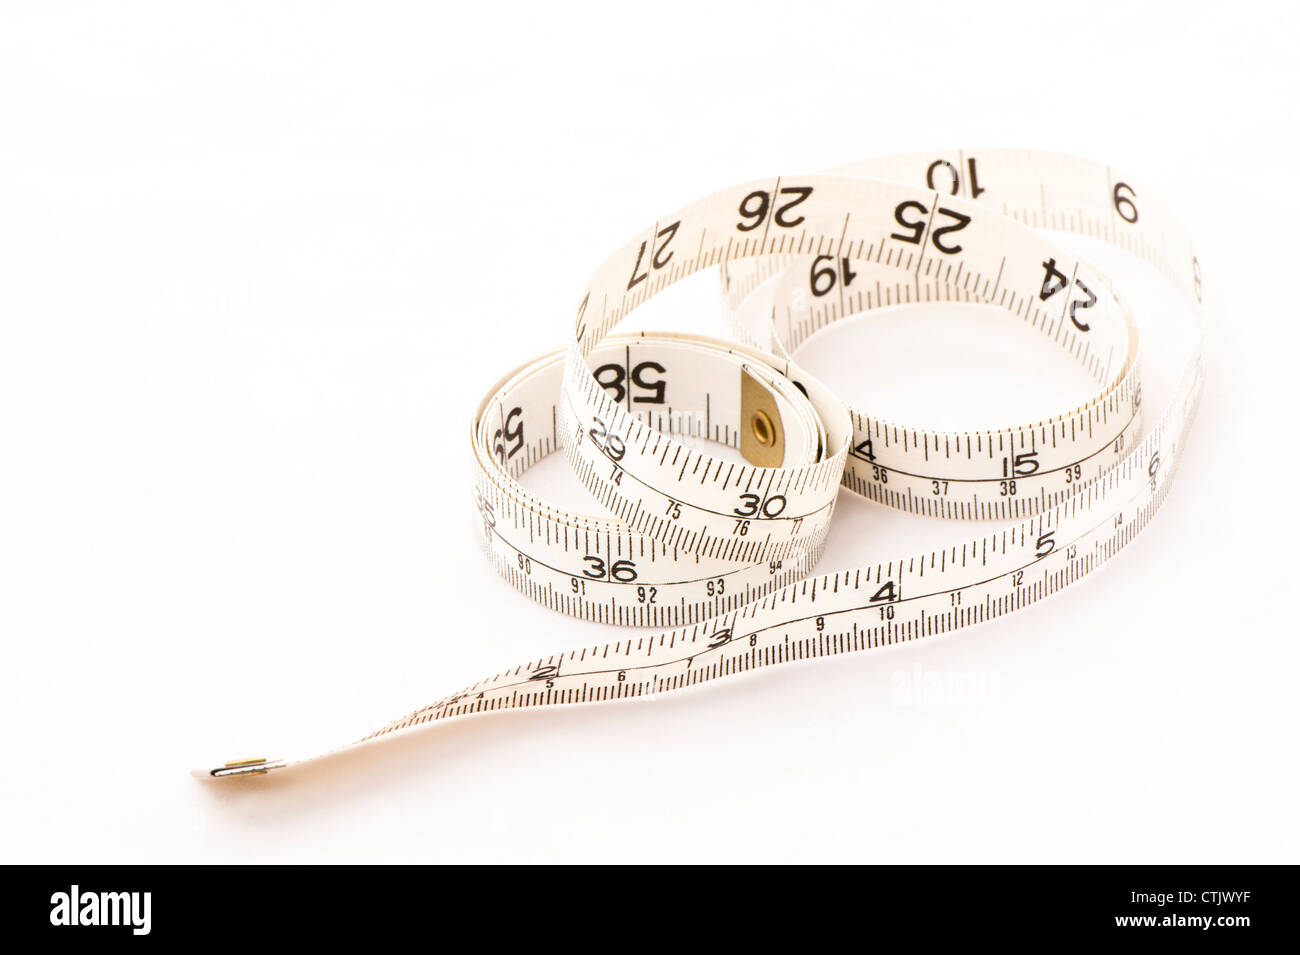 Dressmaker's metric and imperial tape measure - Stock Image